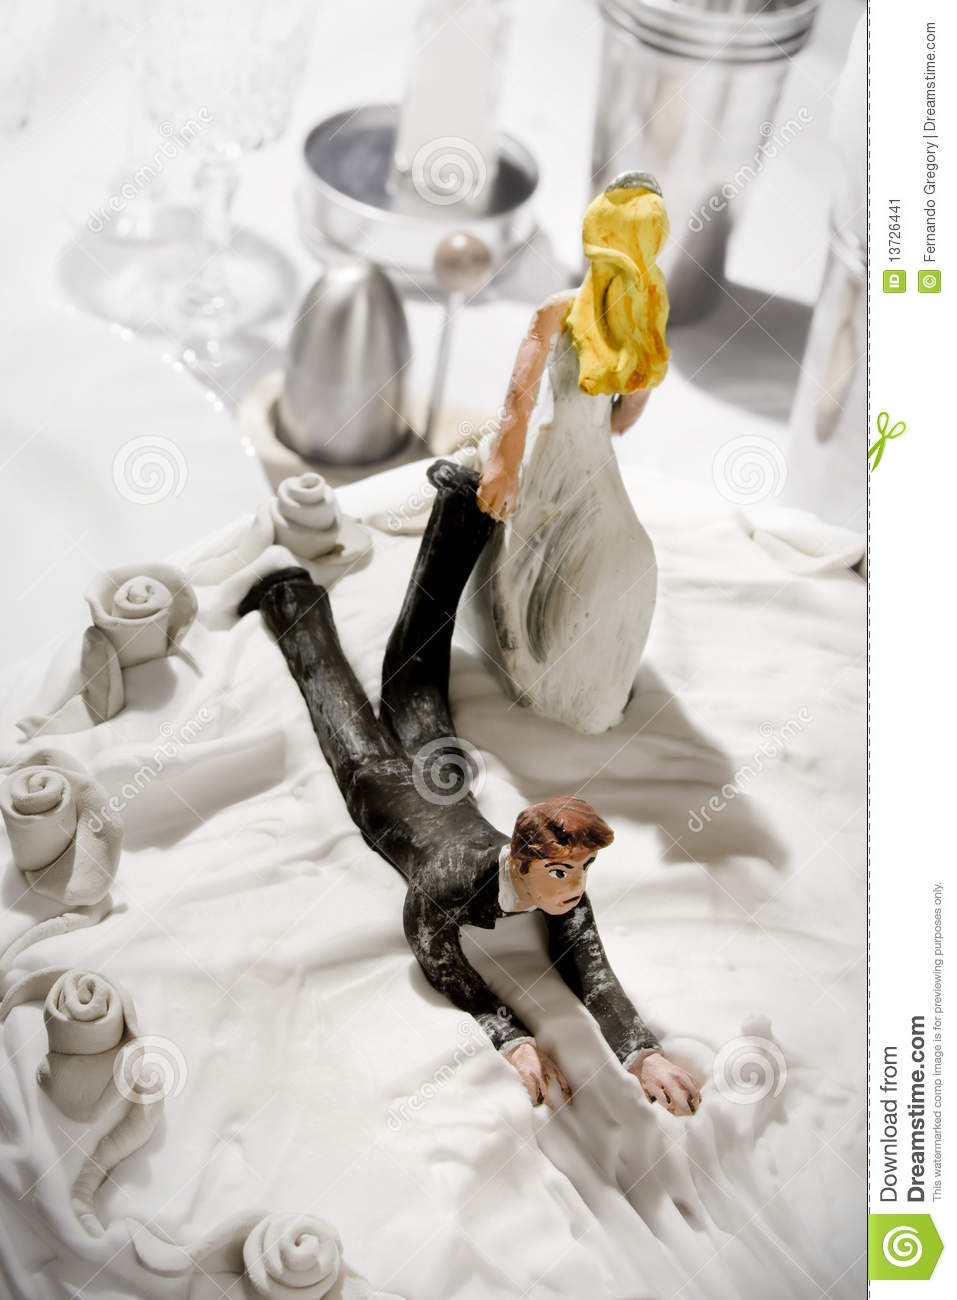 Funny wedding cake figurines stock image image 13726441 royalty free stock photo download funny wedding cake junglespirit Image collections